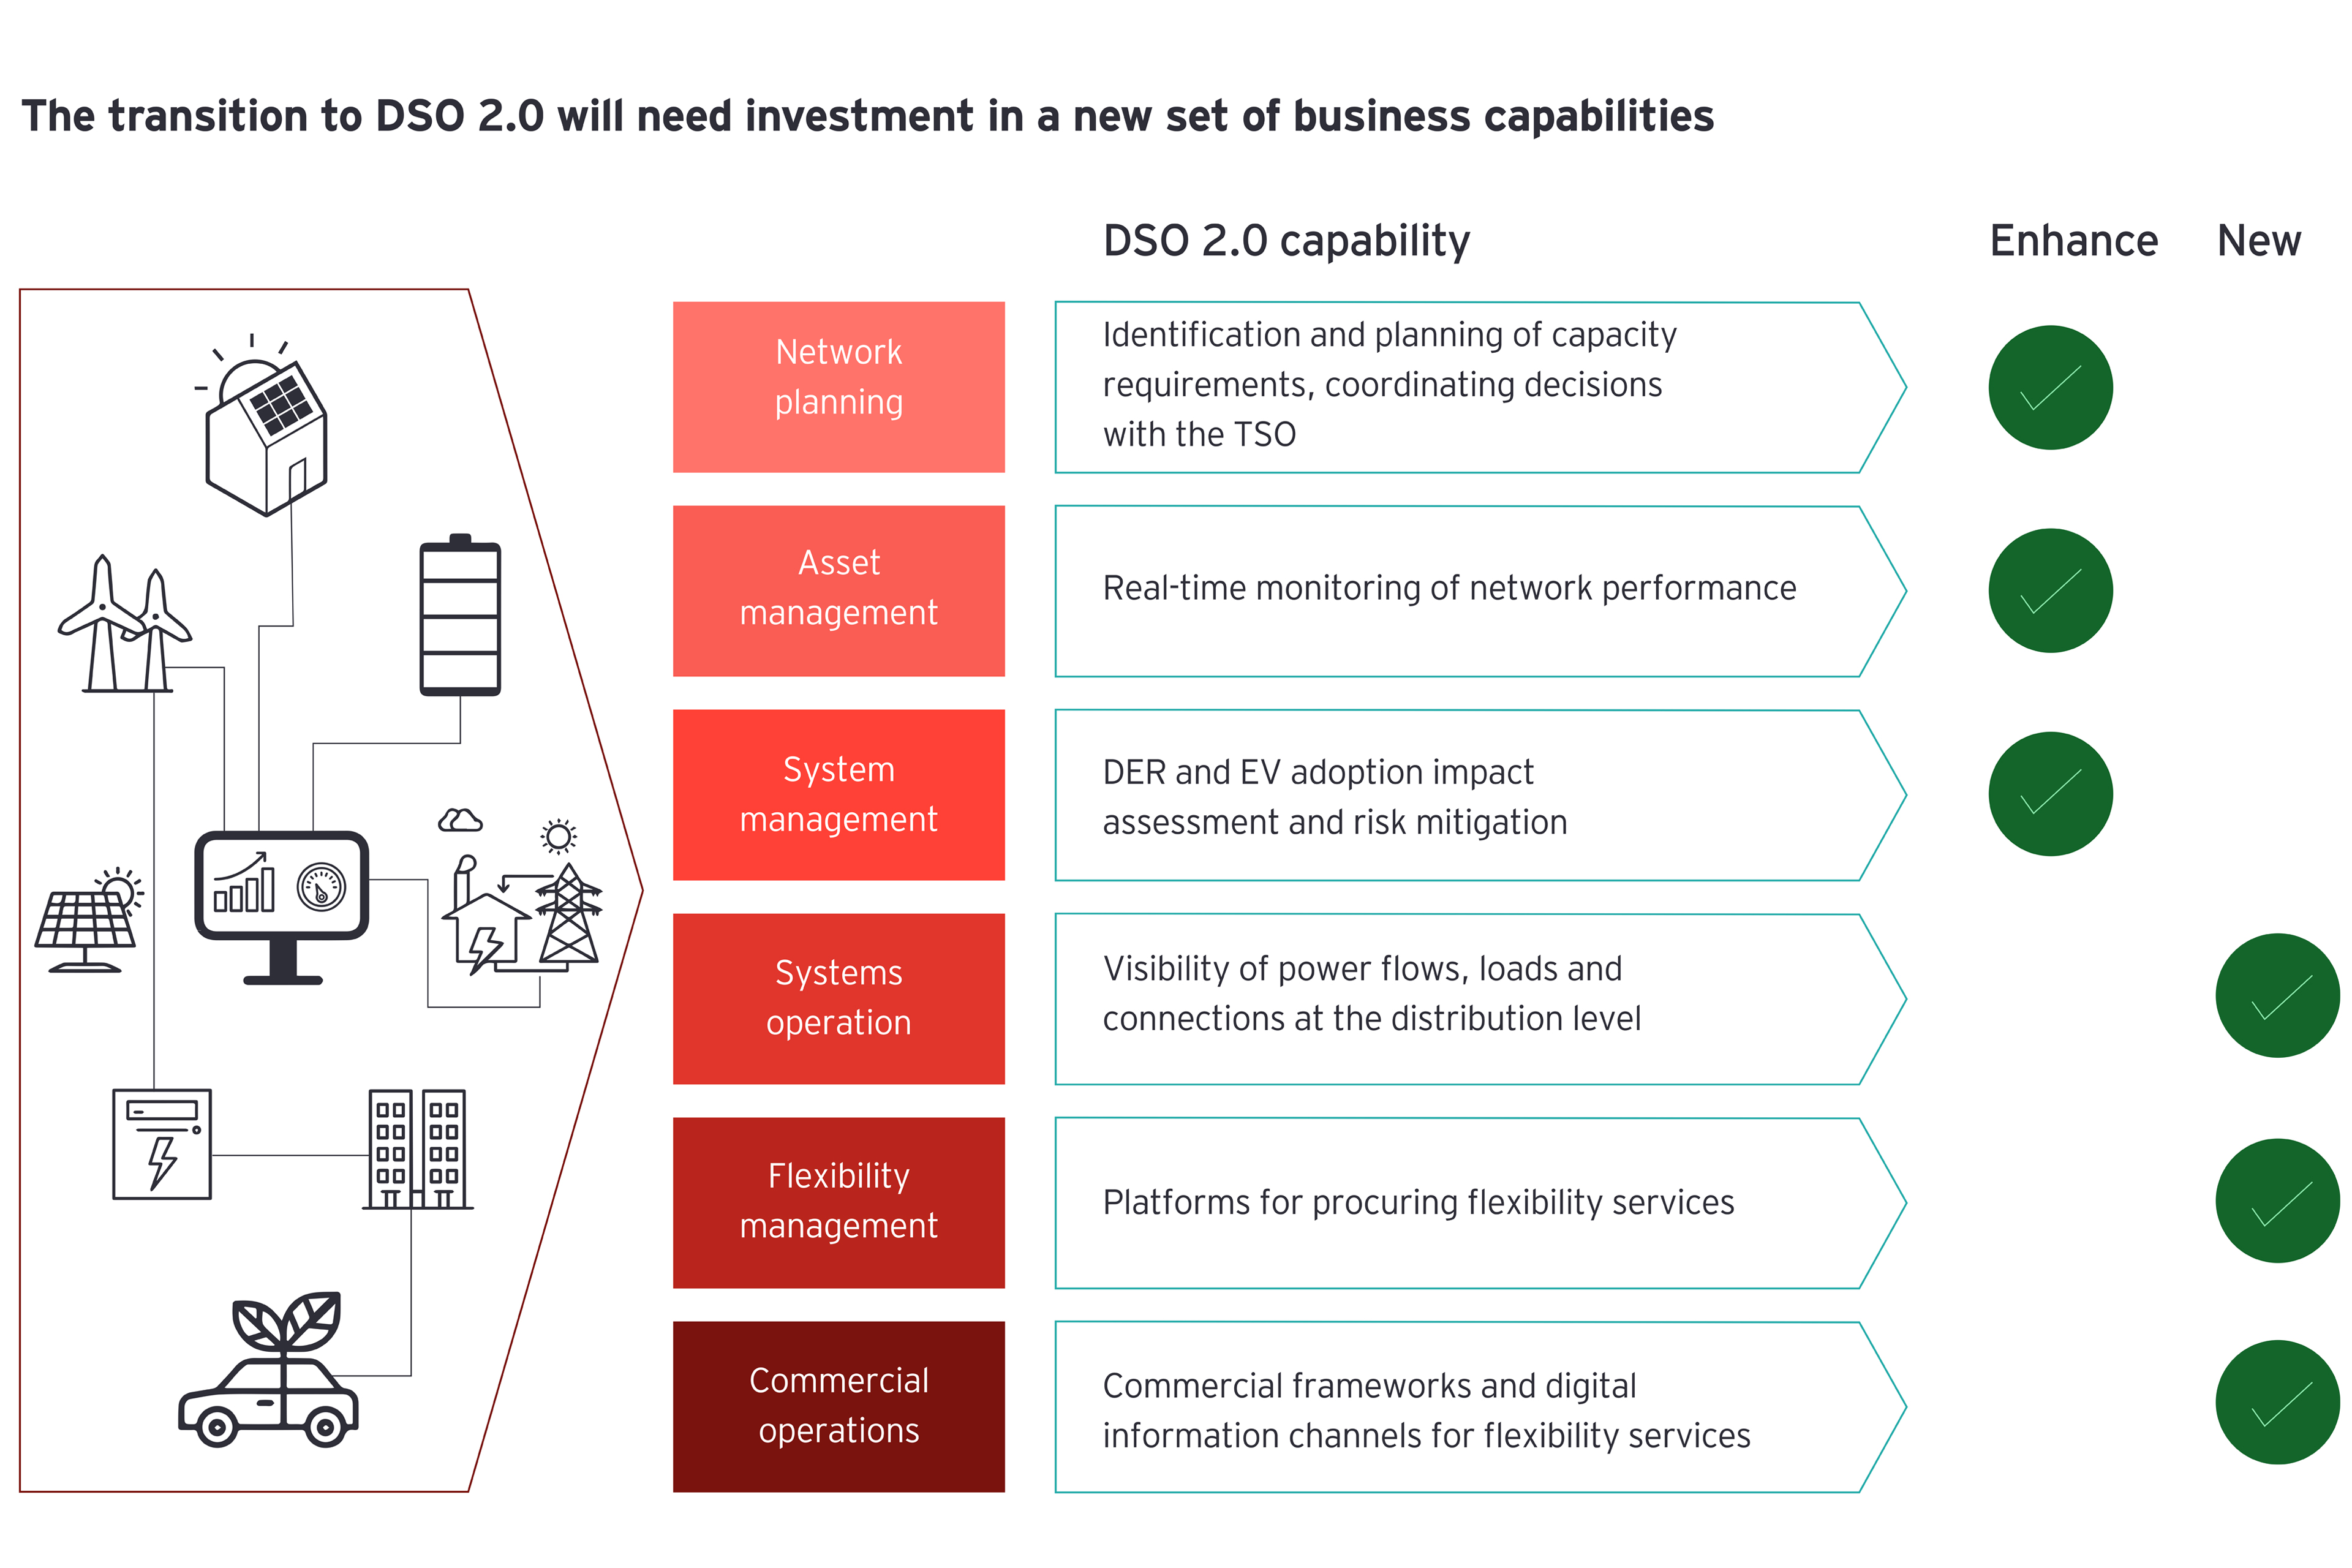 The transition to DSO 2.0 will need investment in a new set of business capabilities